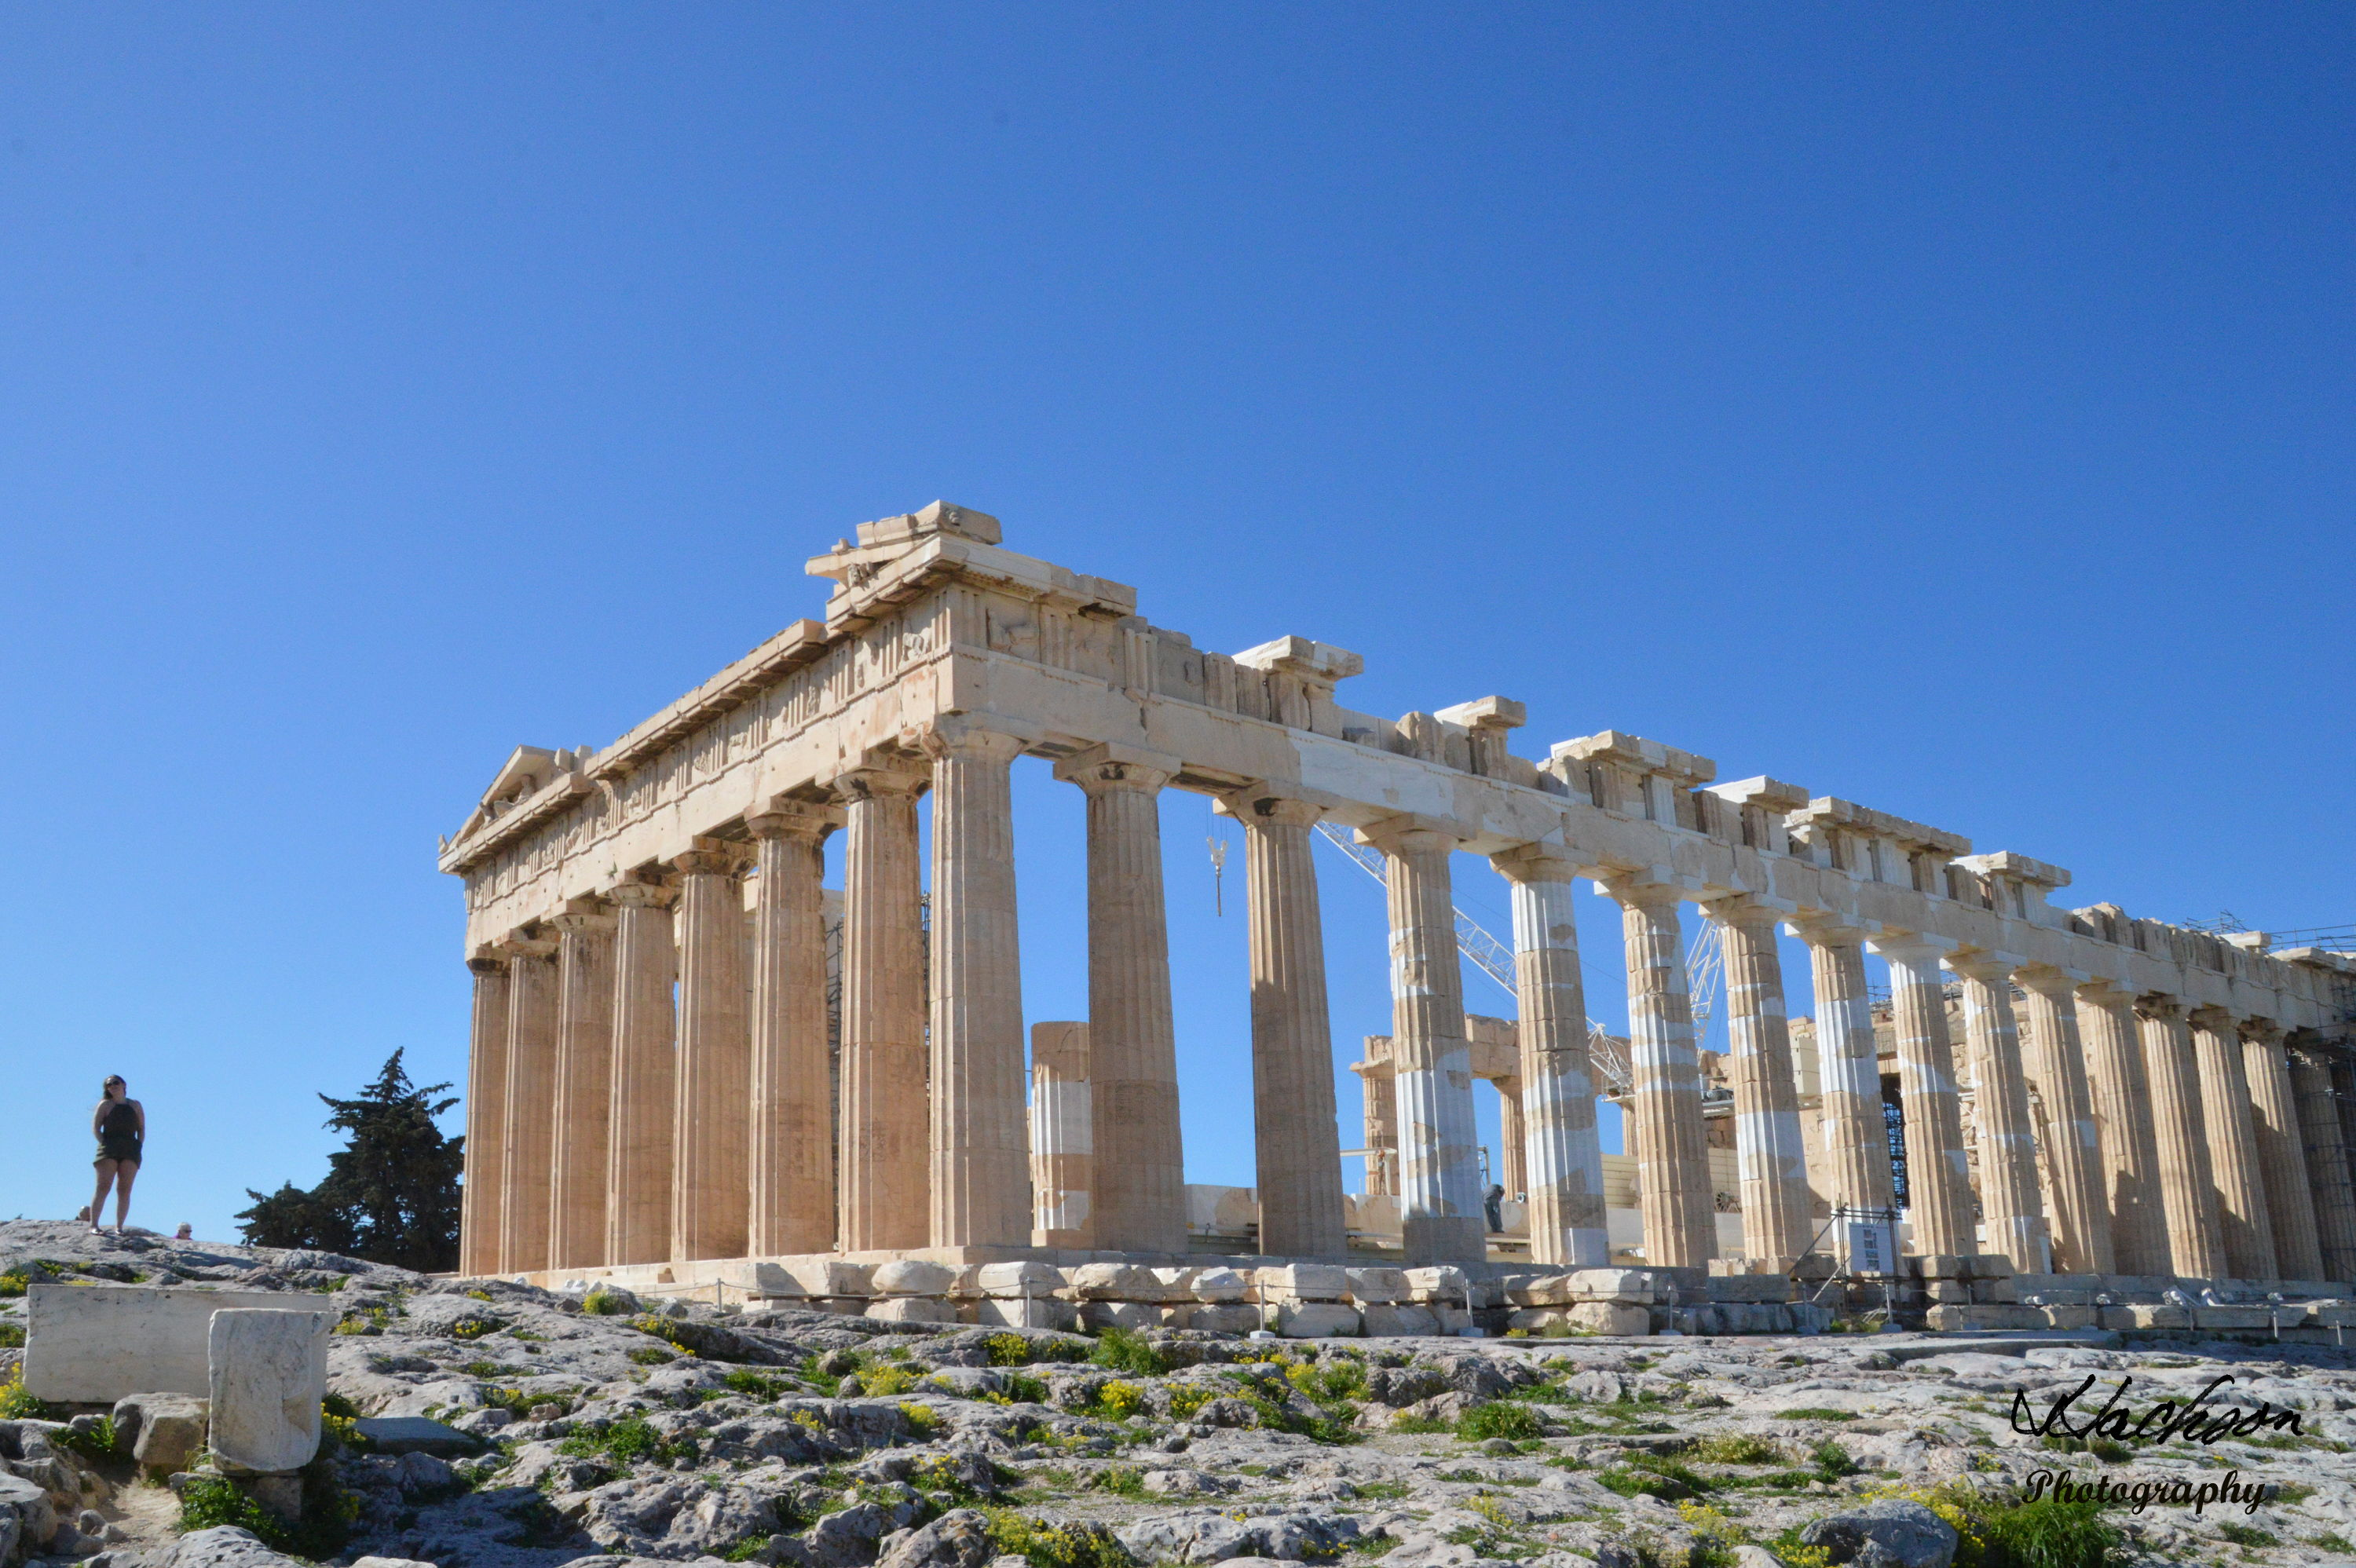 Photo of the Greek Parthenon at Athens